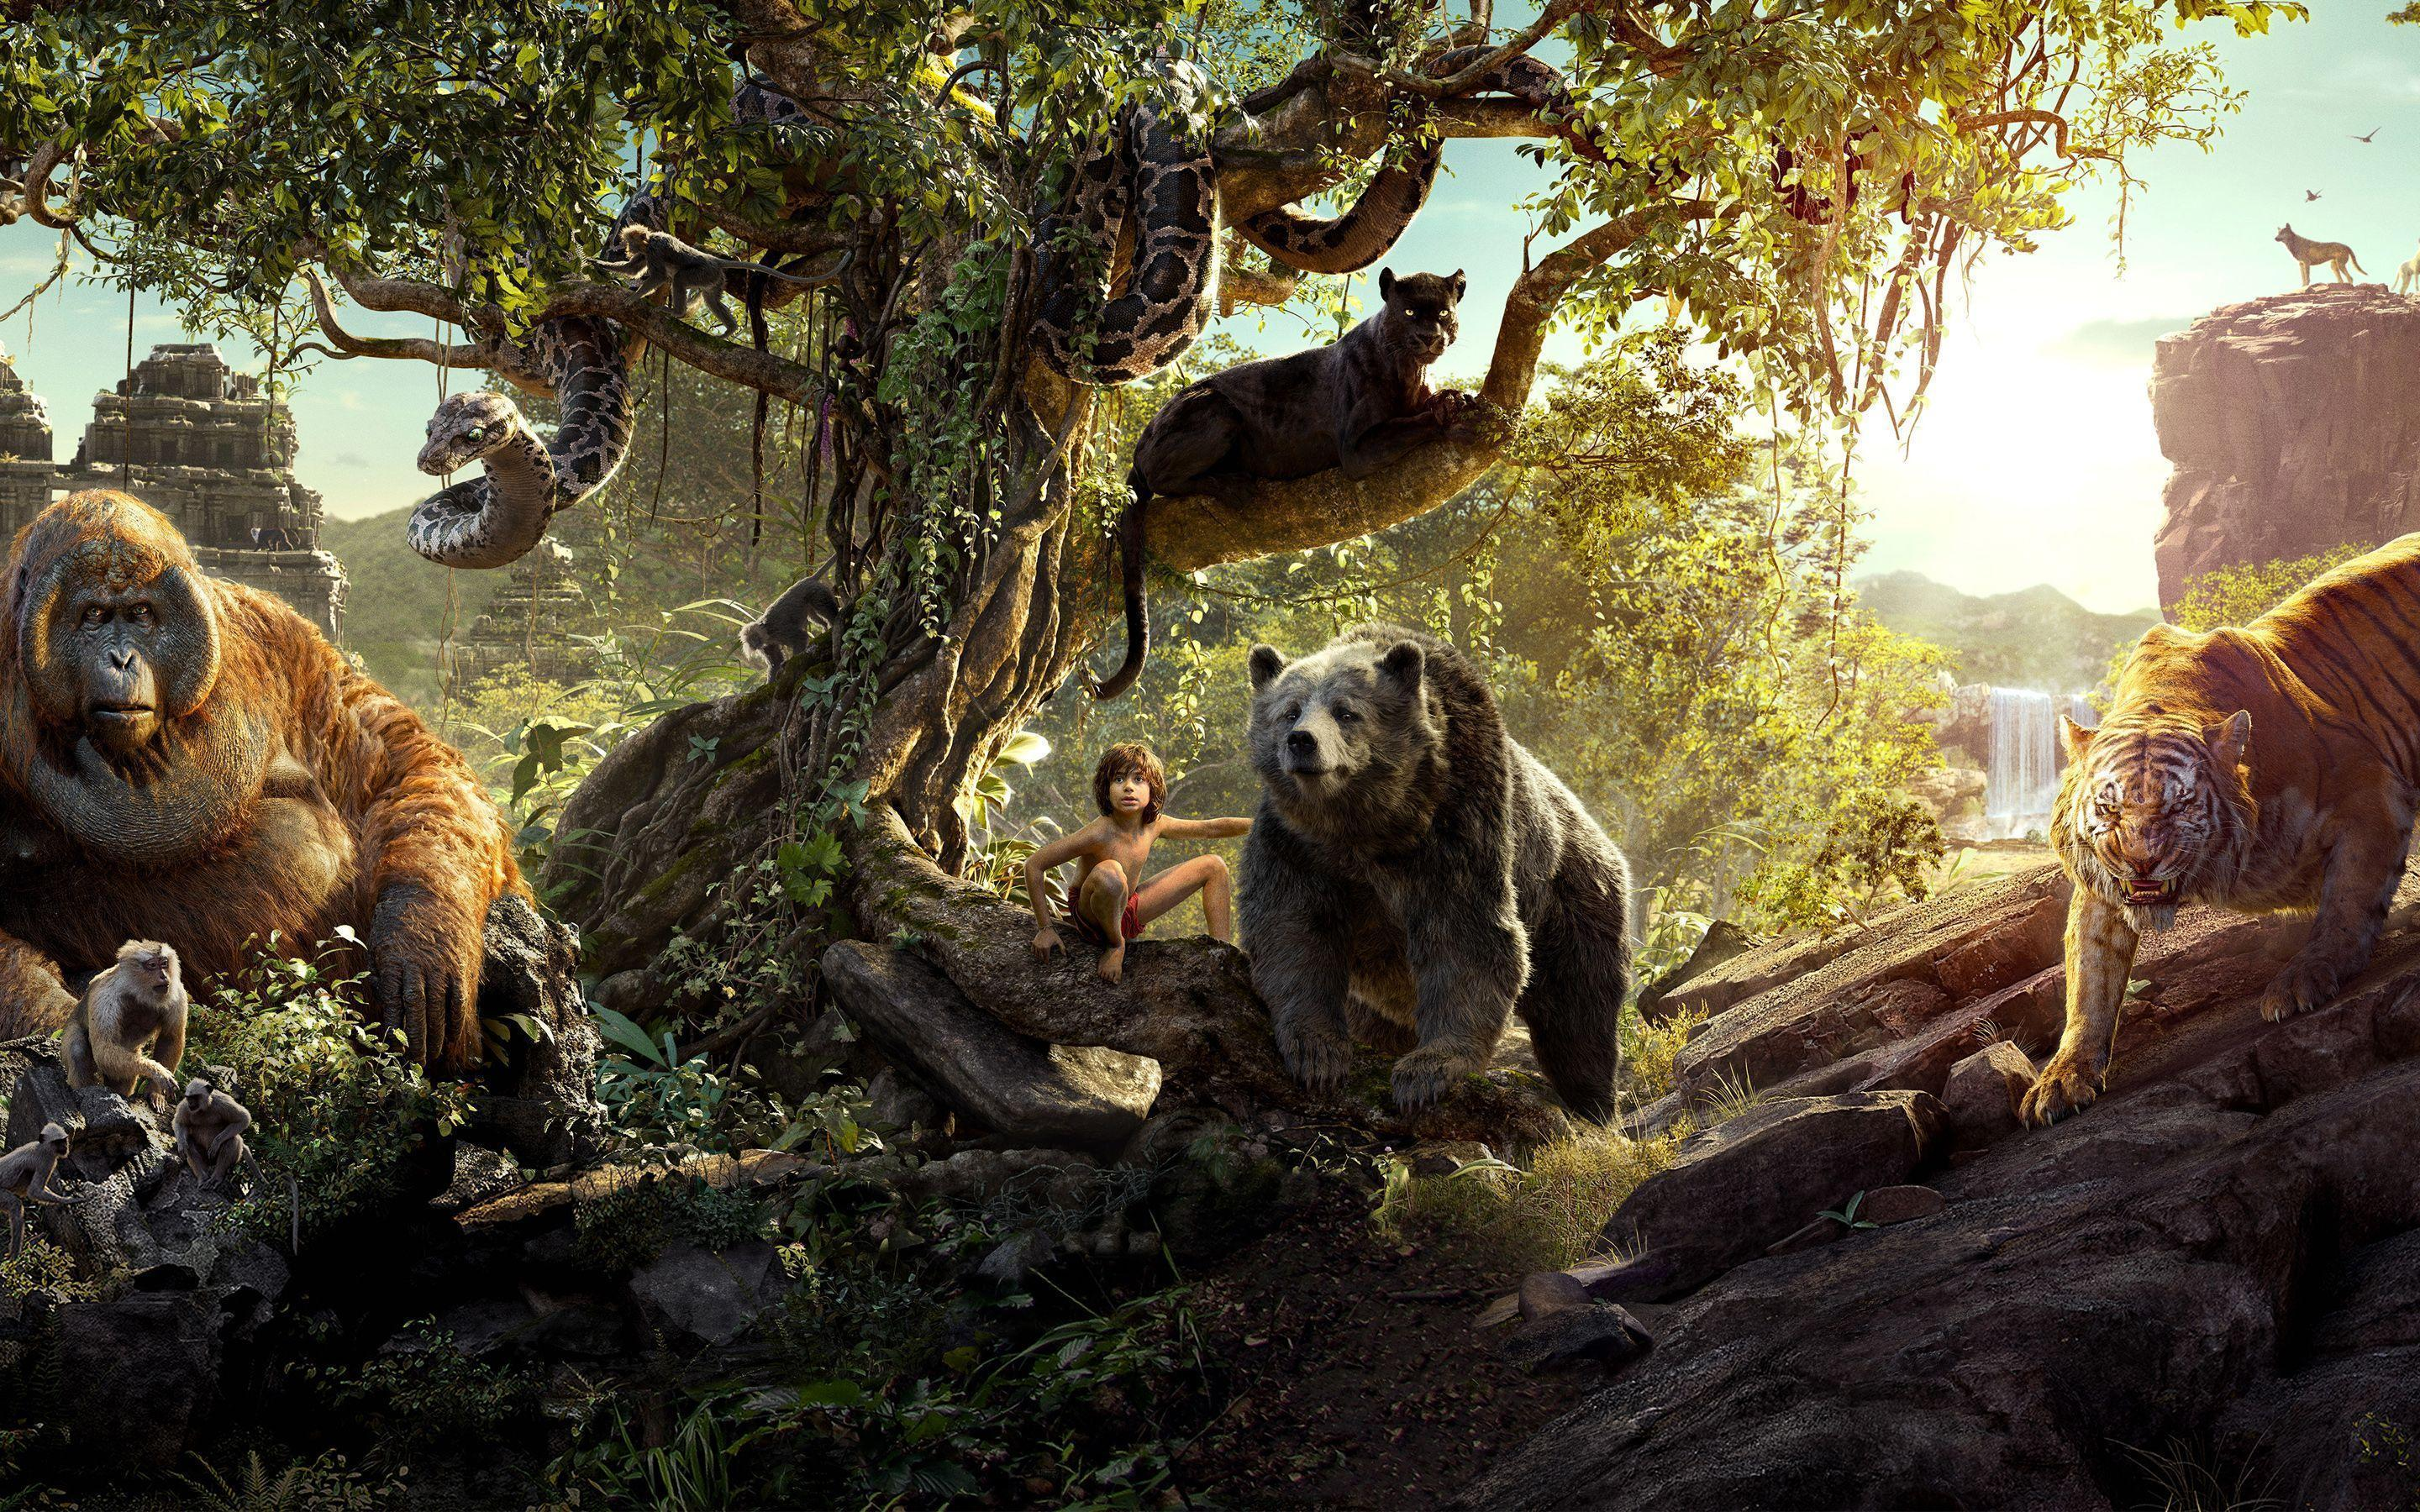 1080p Jungle Book Hd Wallpaper